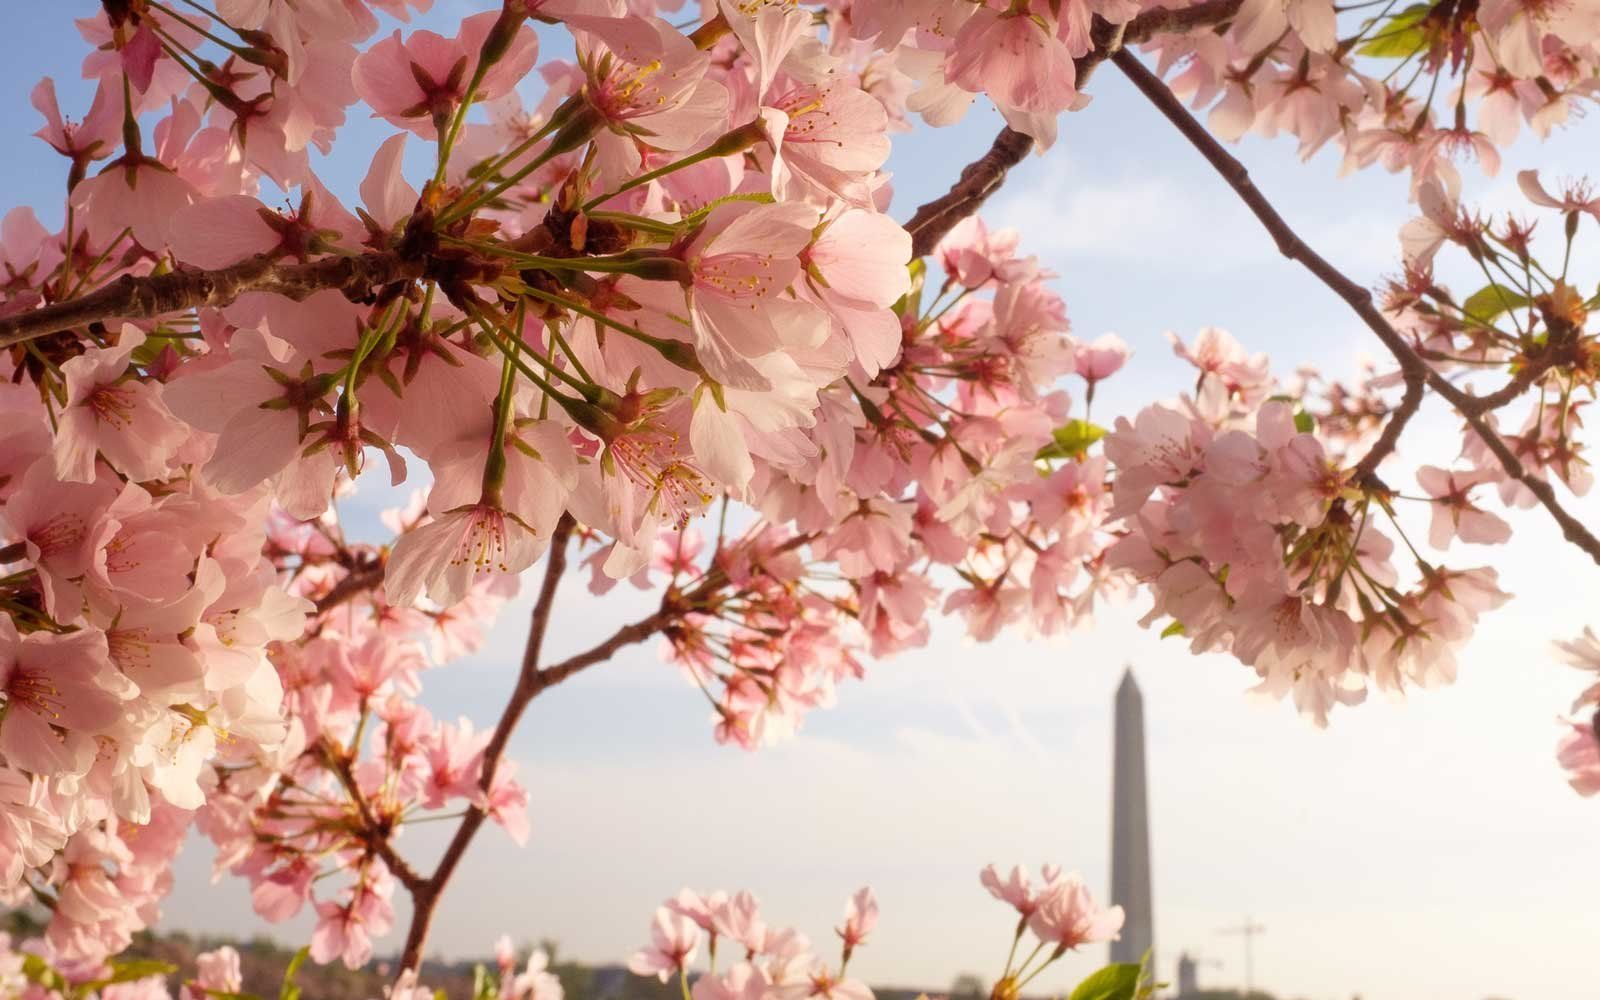 Cherry Blossom Forecast 2018 Washington D C Festival: cherry blossom pictures